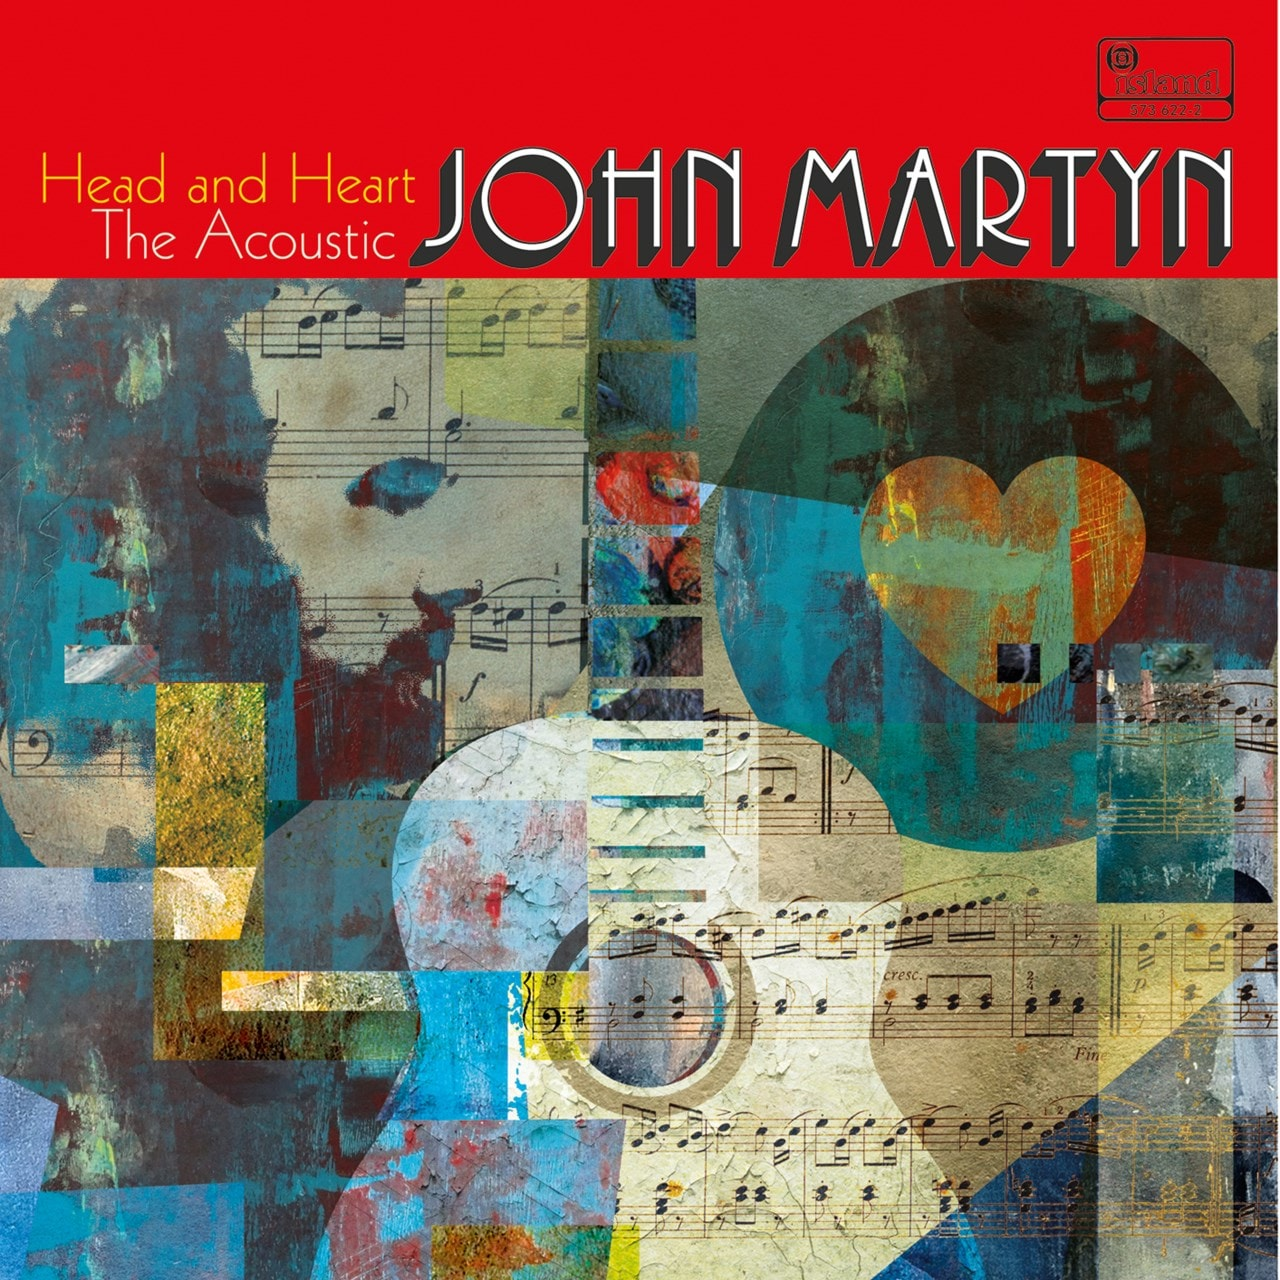 Head and Heart: The Acoustic John Martyn - 1